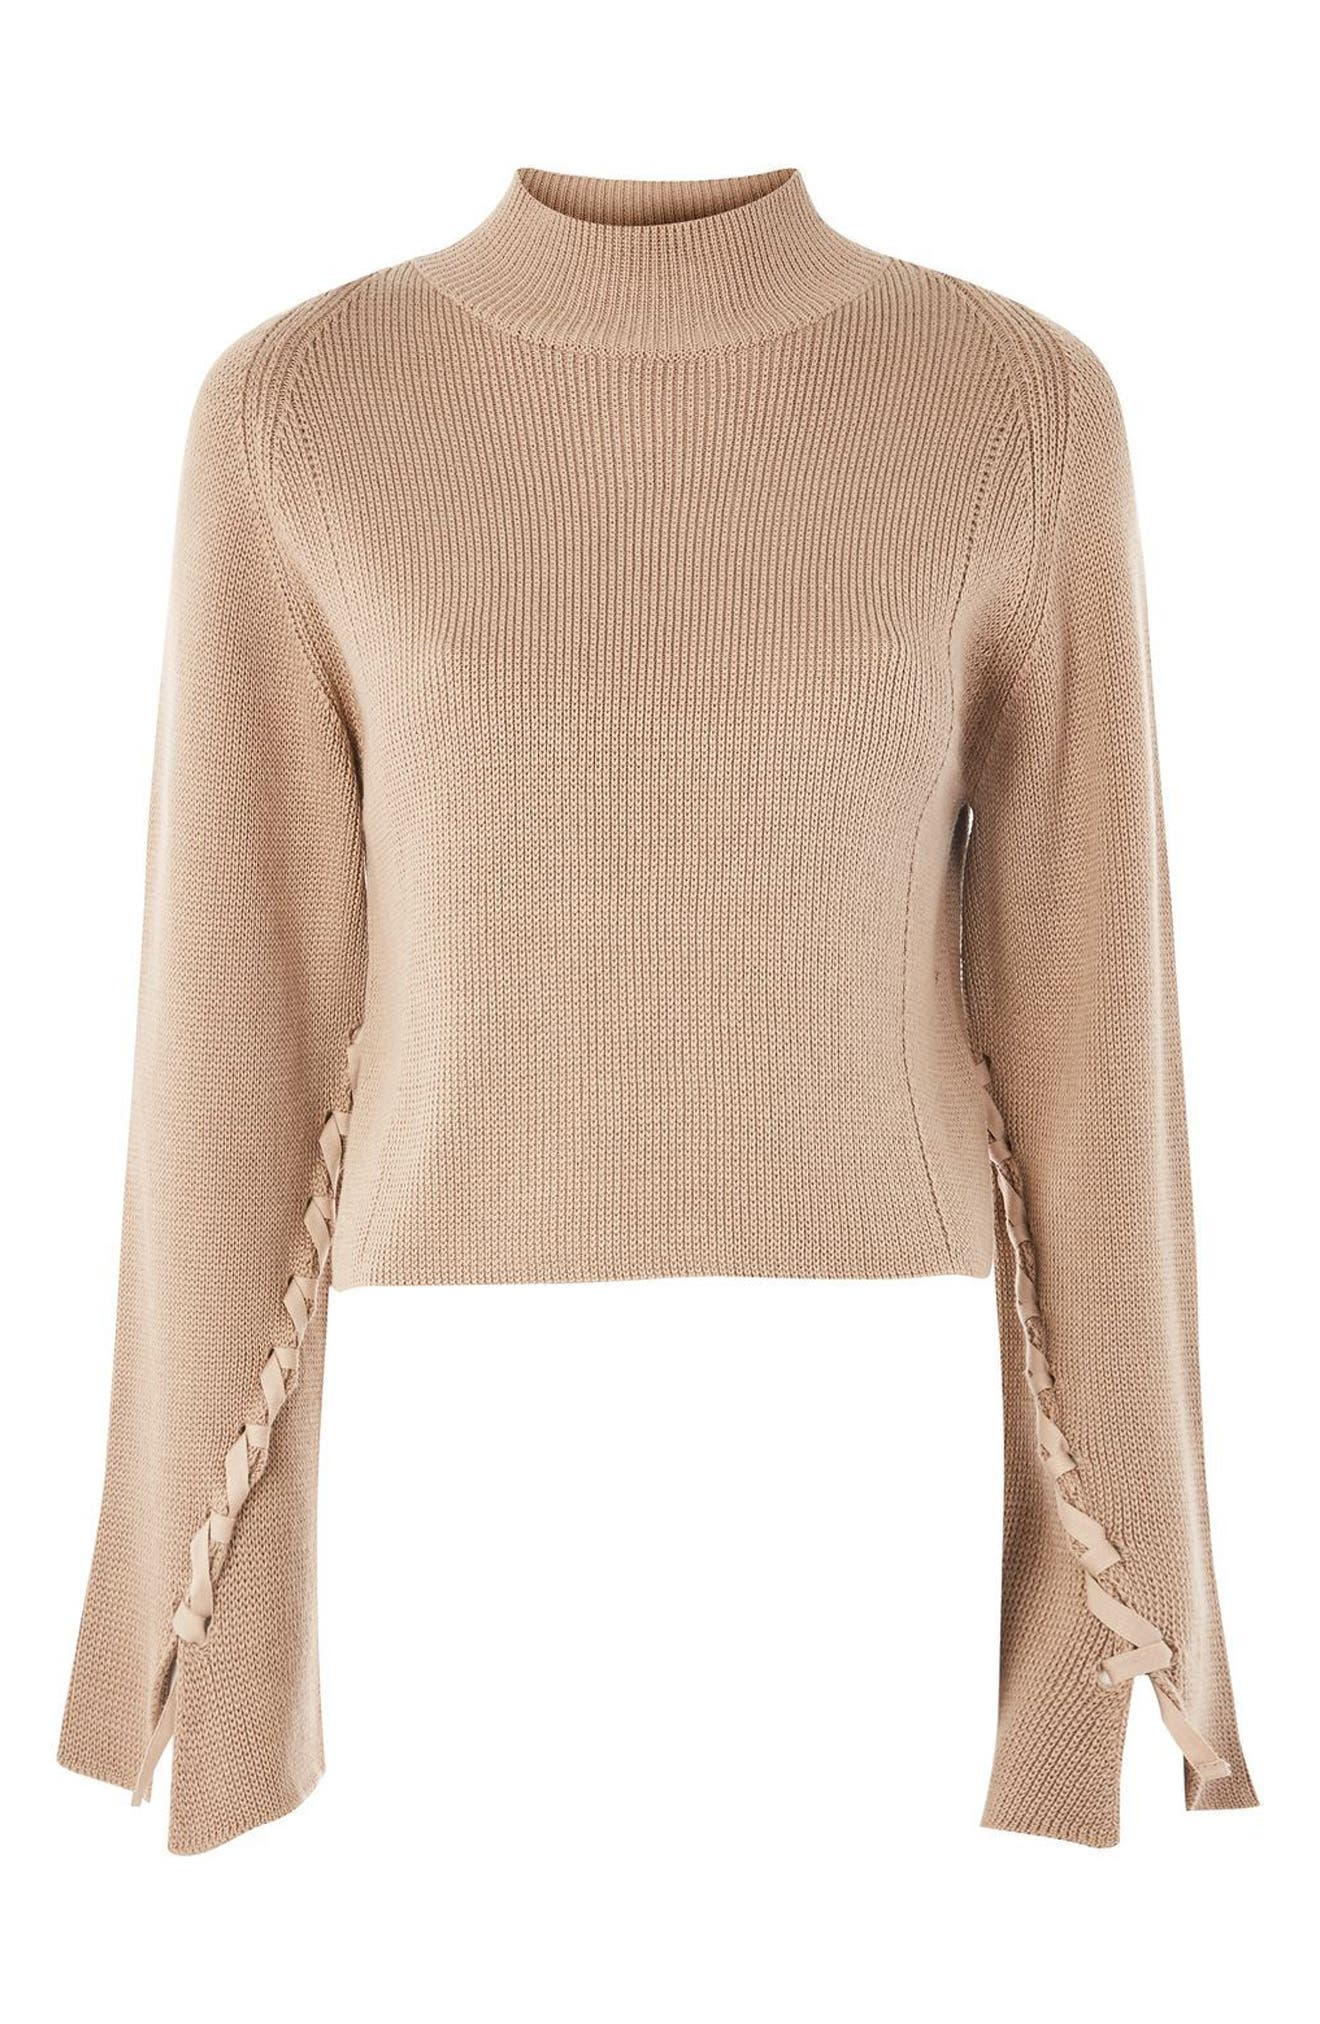 Lace Sleeve Funnel Neck Sweater,                             Alternate thumbnail 5, color,                             Mink